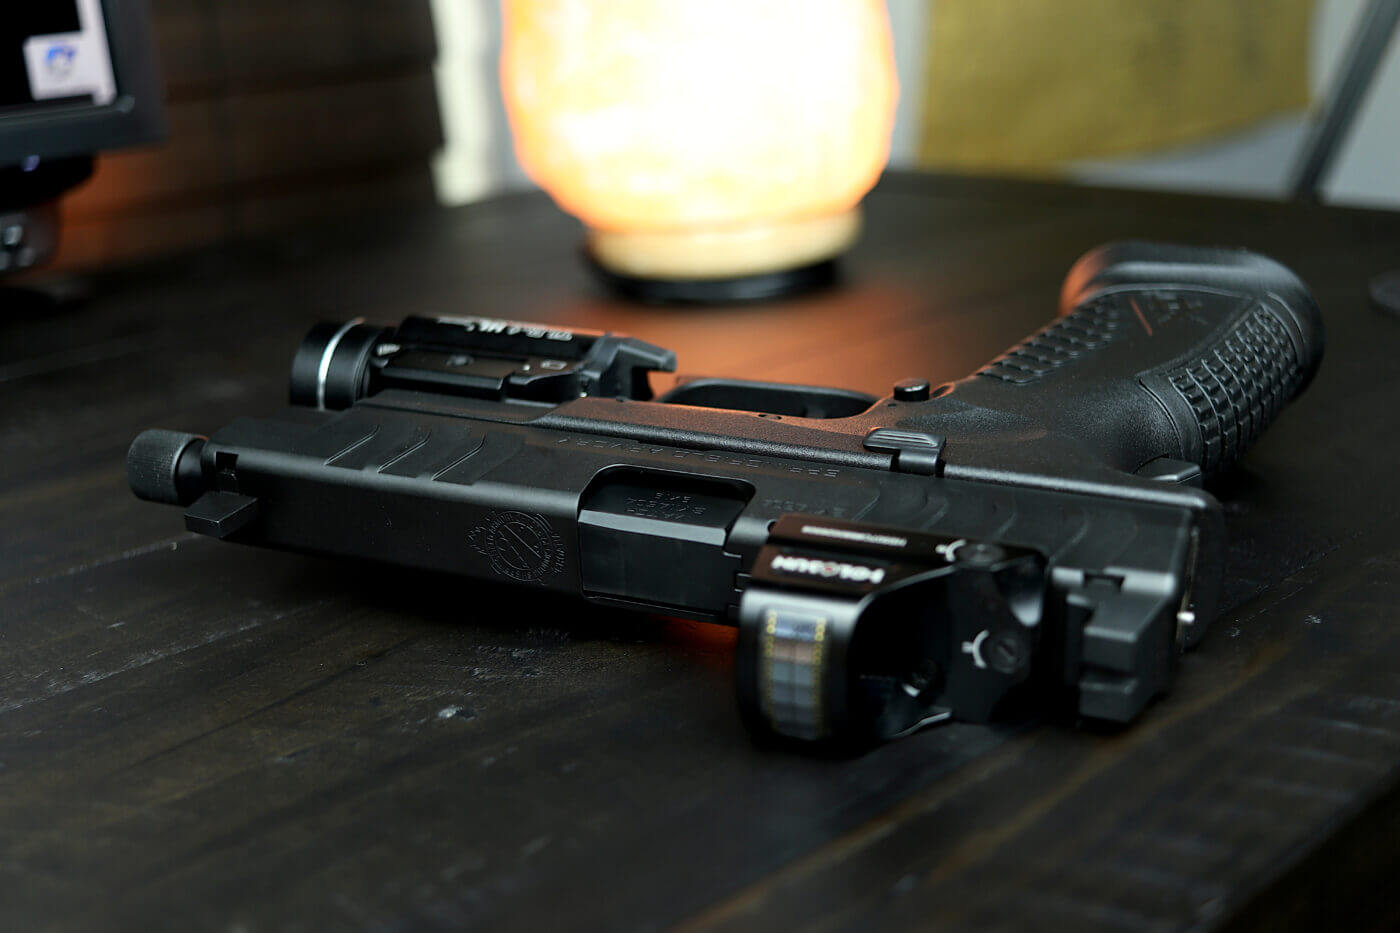 Springfield Armory XD-M Elite Tactical OSP with Streamlight TLR-1 HL